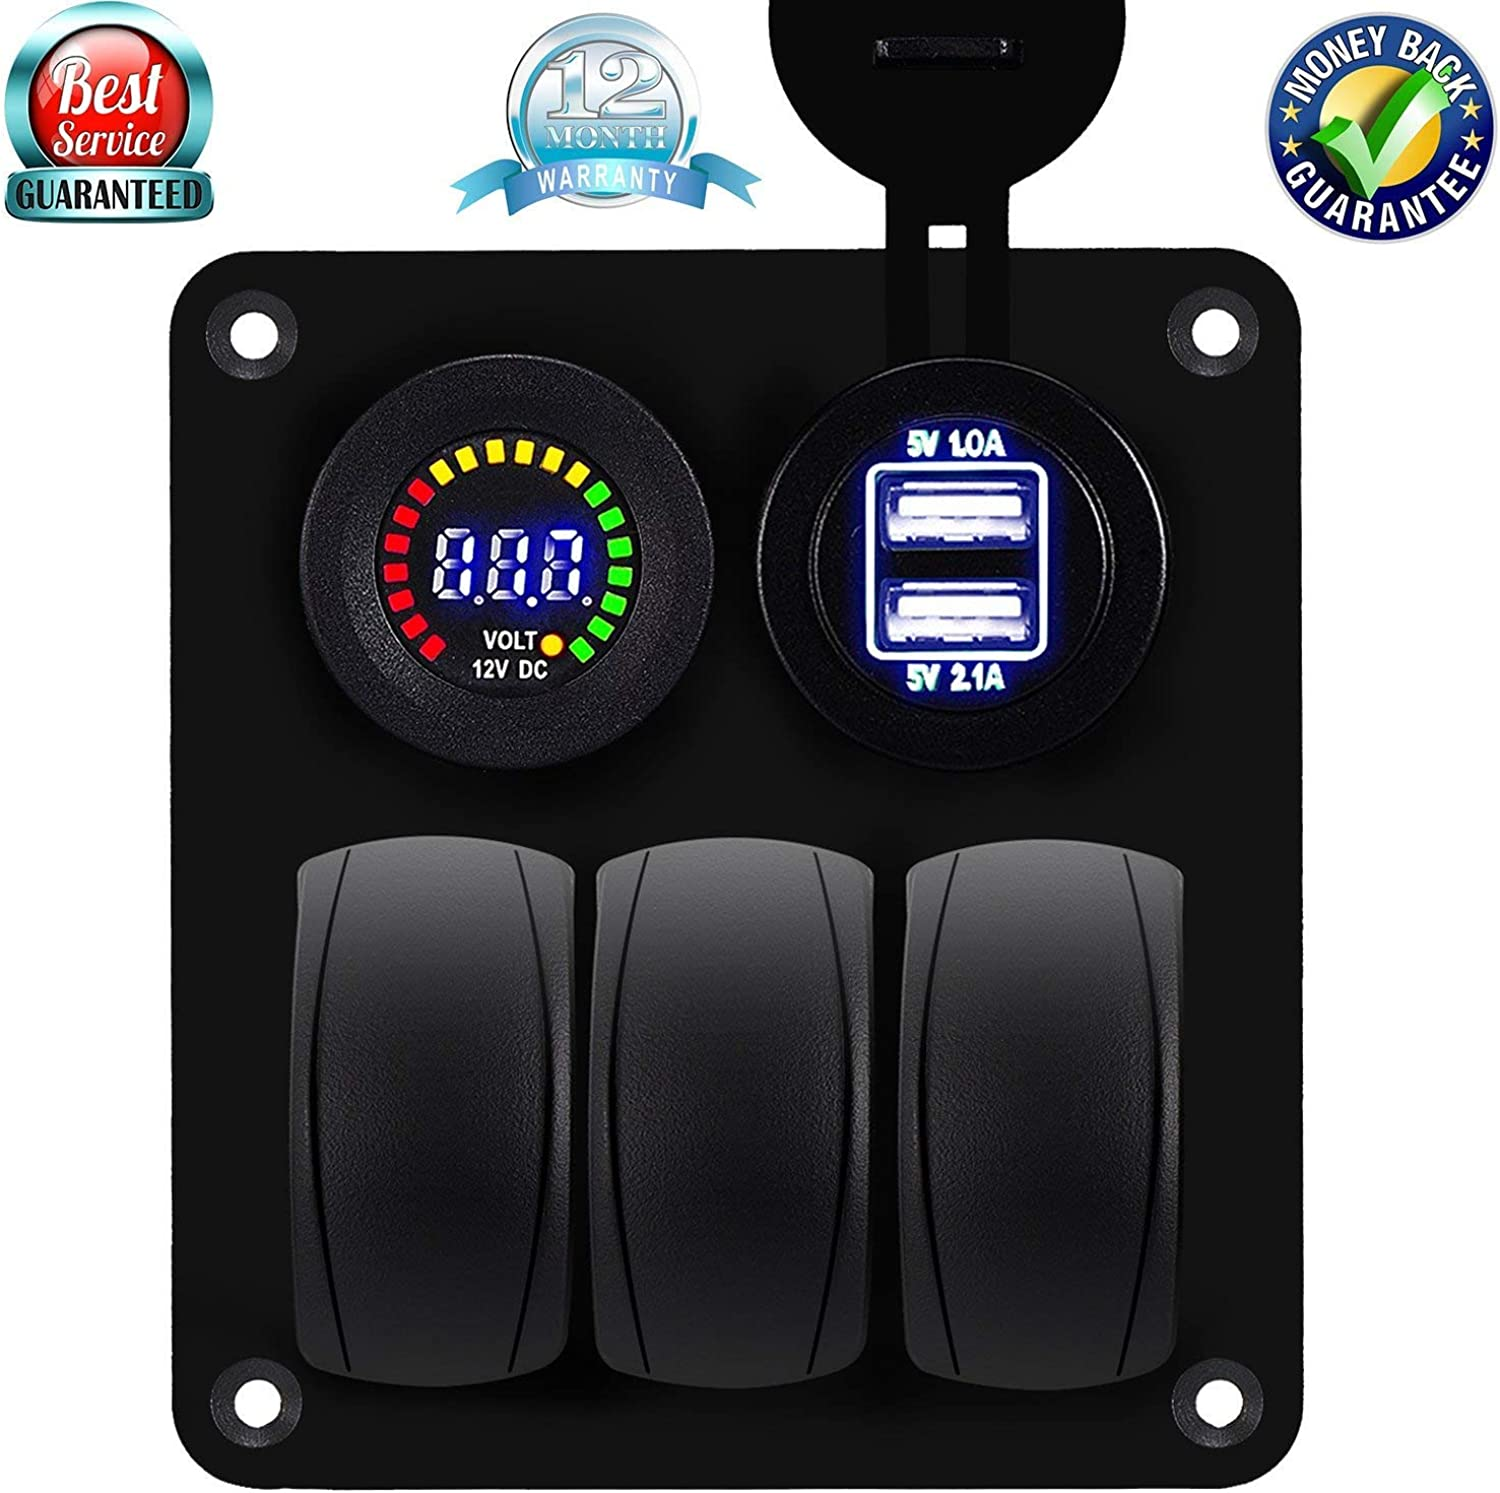 car marine rocker switch panel with fuse dual usb + power socket  digital voltmeter overload predection for rv car boat boat  nyjcvl6975-sporting goods